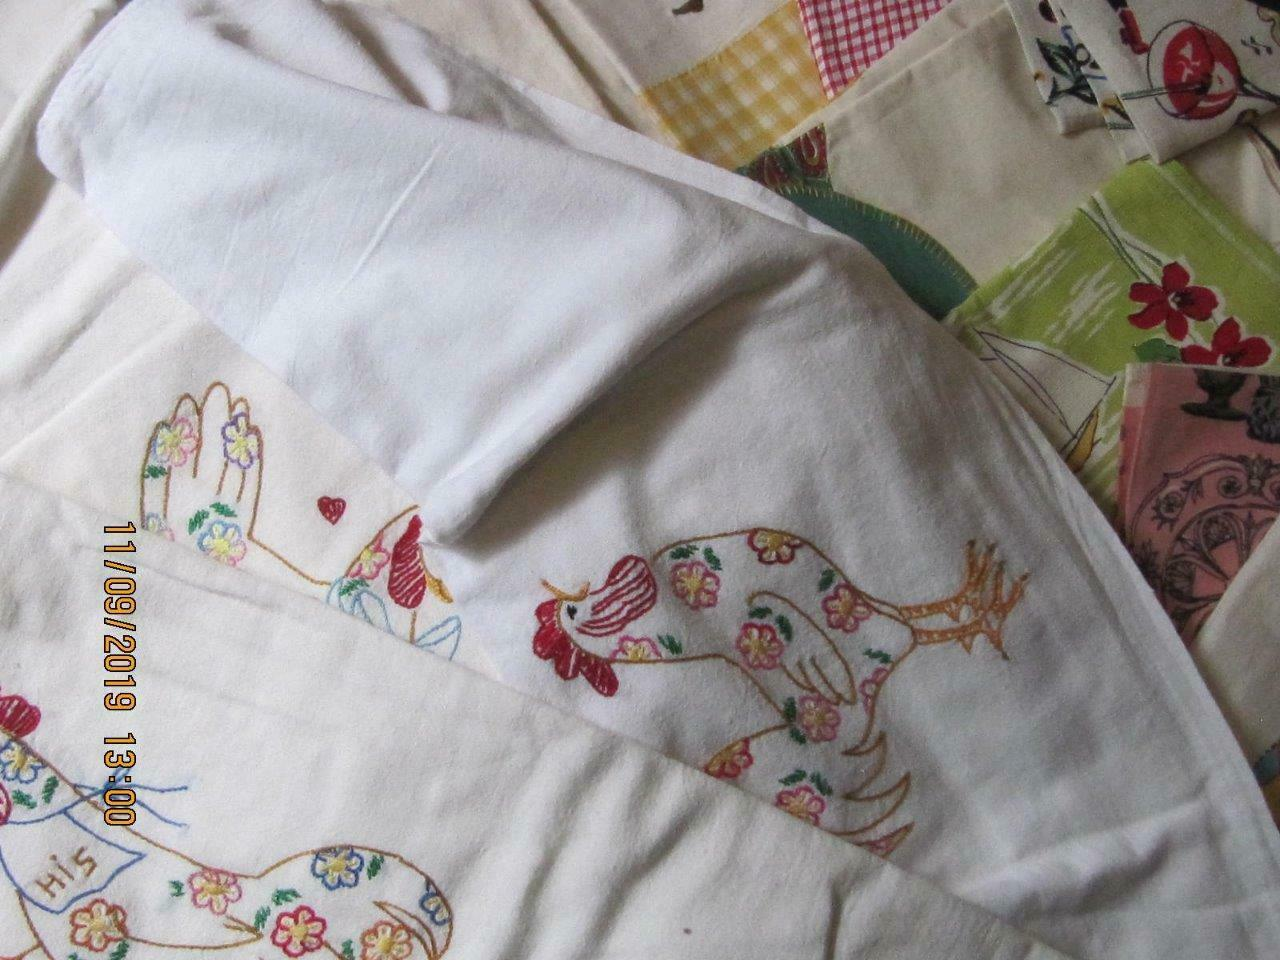 Lot of 25 Vintage teatowels dish towels assorted sizes colors condition fabrics image 2